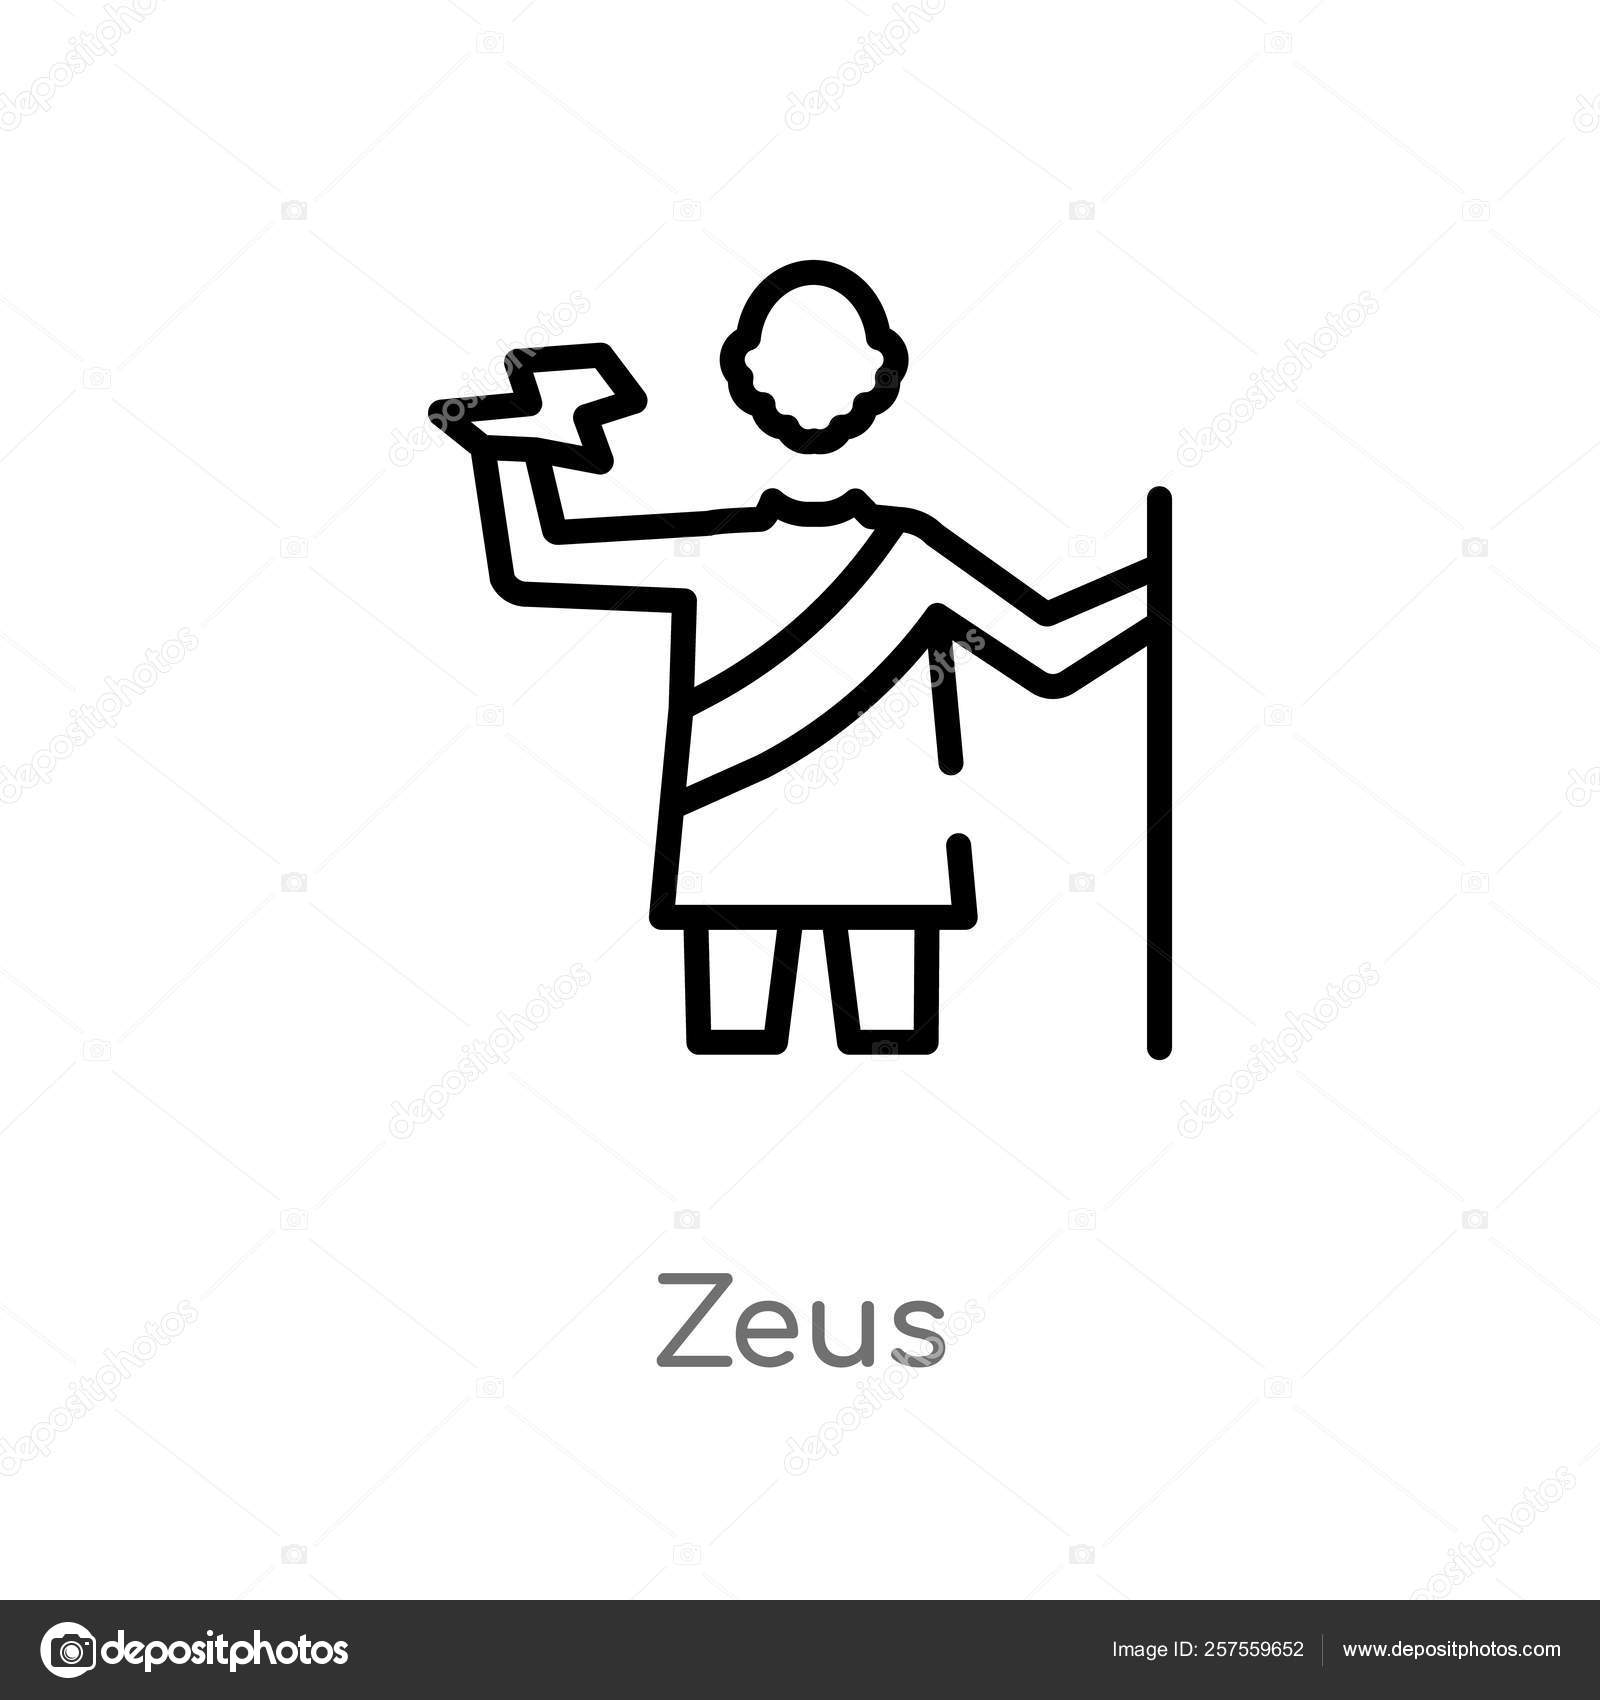 Outline Zeus Vector Icon Isolated Black Simple Line Element